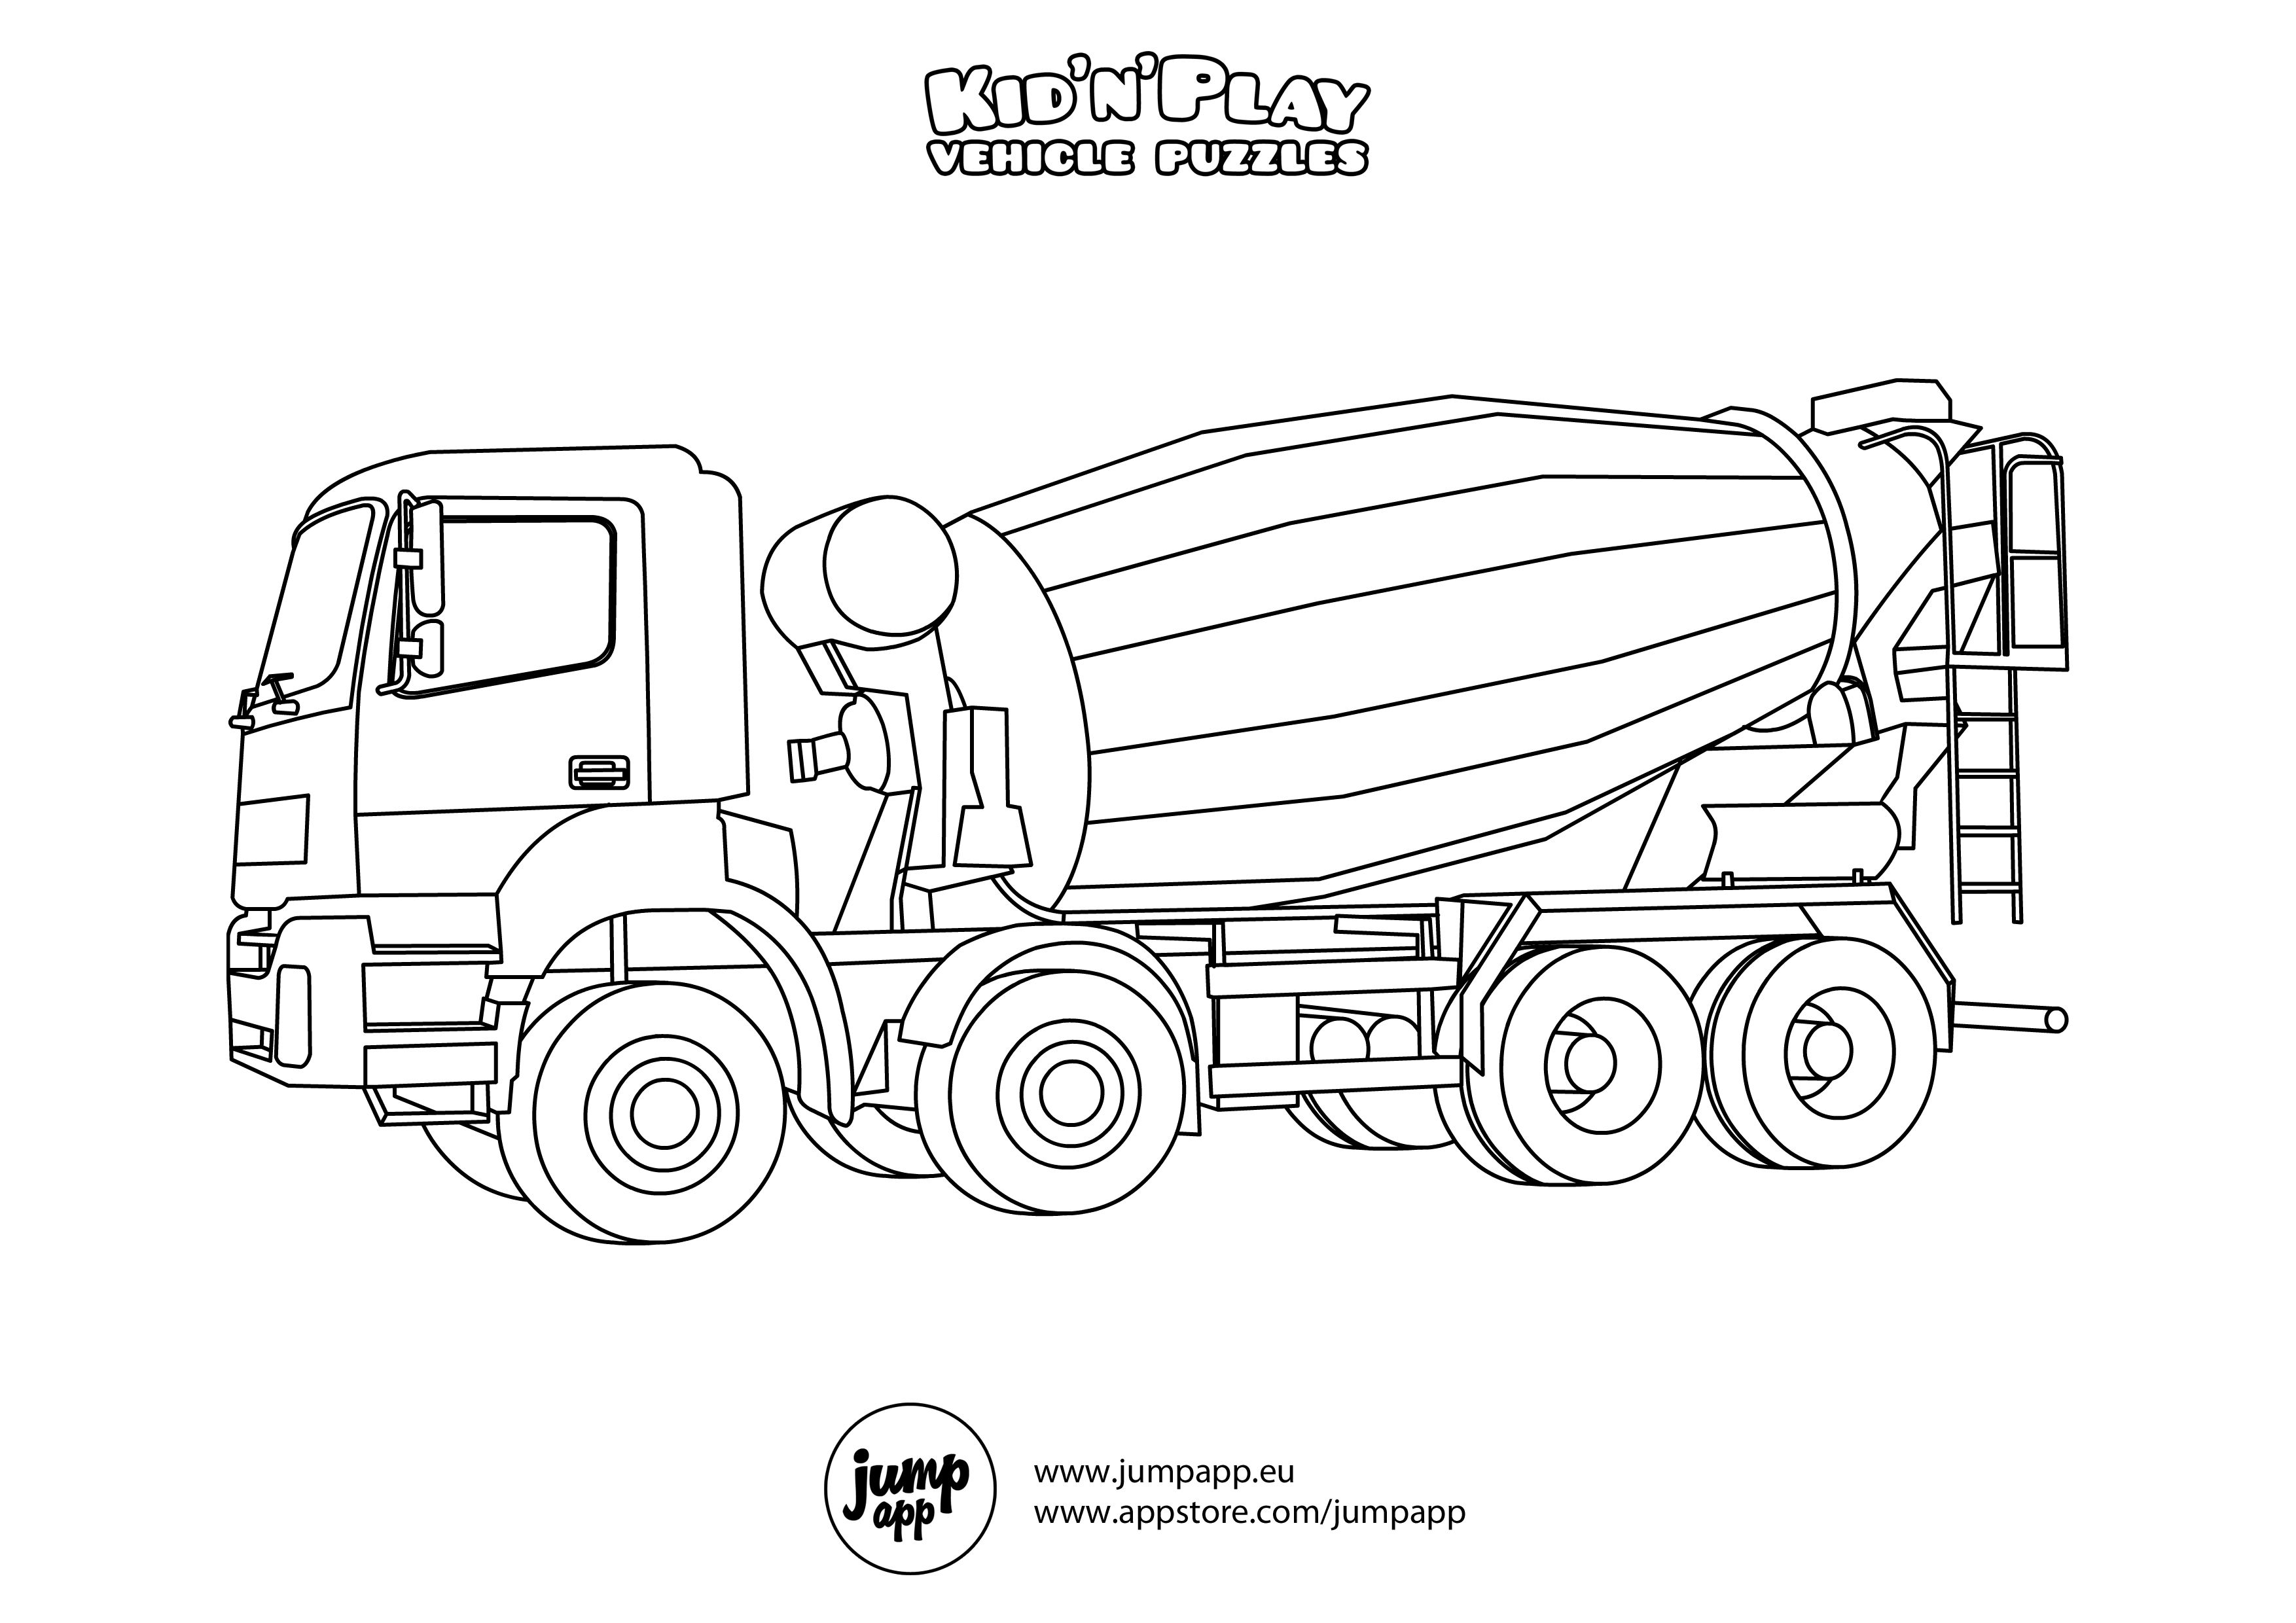 cement mixer coloring pages cement mixer coloring page for kids transportation coloring cement mixer pages